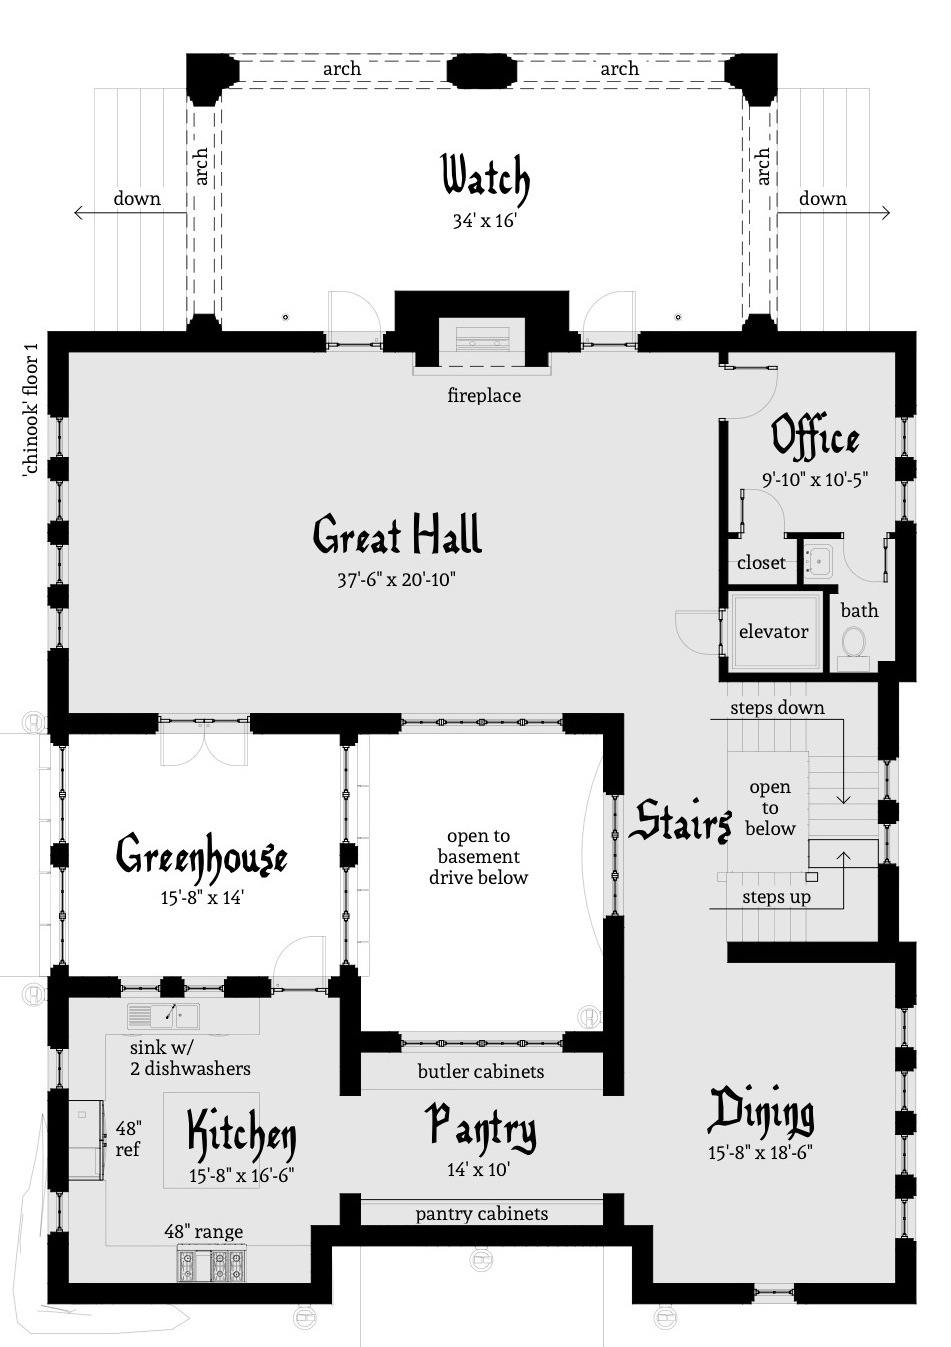 chinook castle plan by tyree house plans. Black Bedroom Furniture Sets. Home Design Ideas